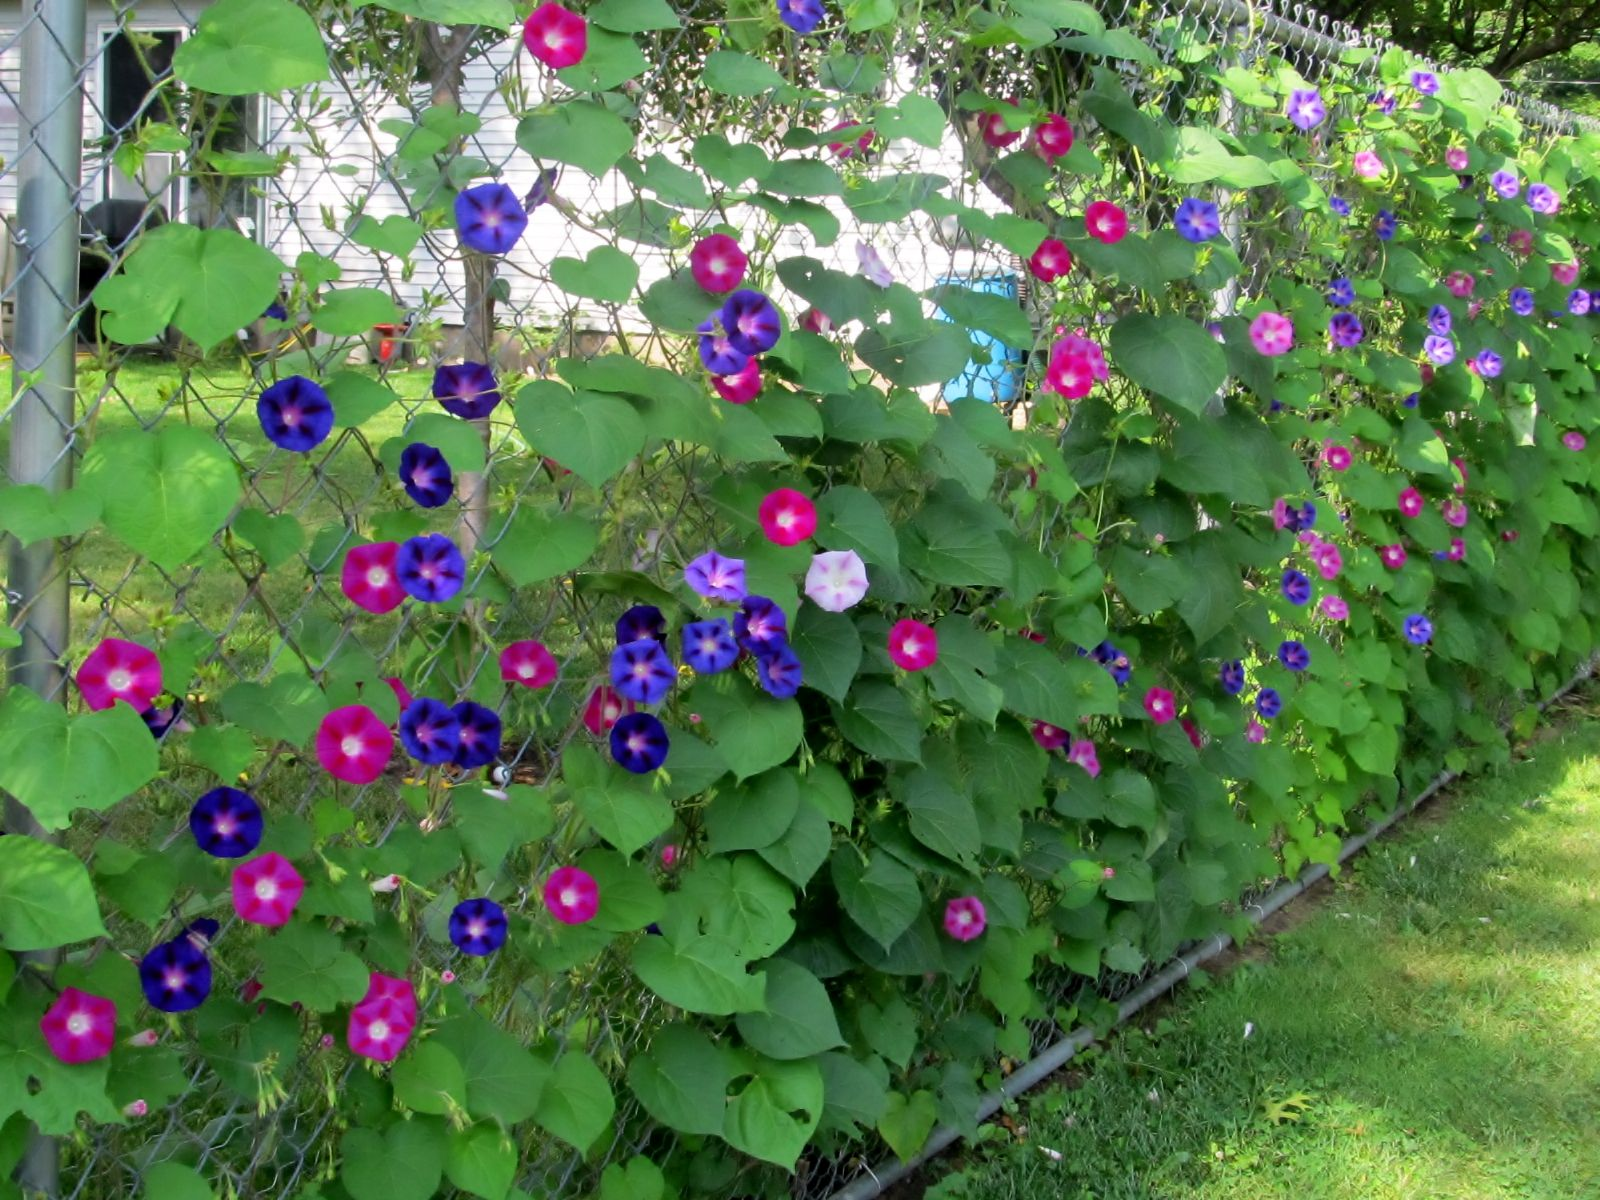 Growing morning glories and clematis up chain link fence for growing morning glories and clematis up chain link fence for privacy baanklon Gallery